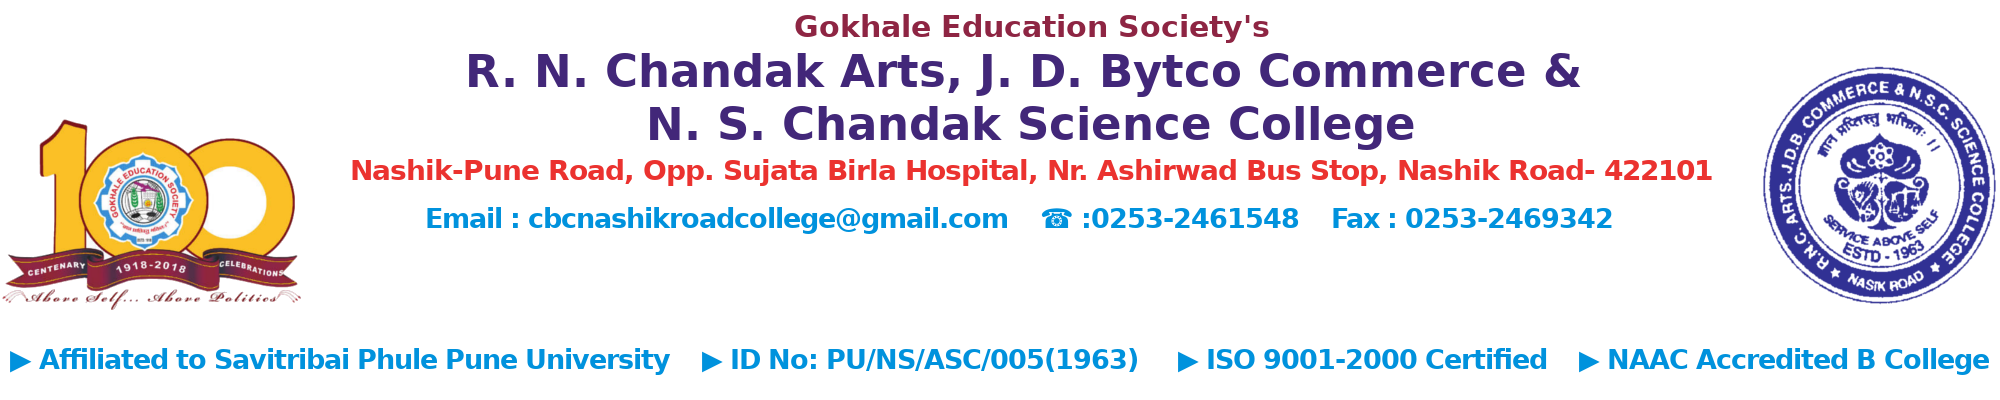 R.N.C. ARTS, J.D.B. COMMERCE , N.S.C. SCIENCE COLLEGE (CBC) NASIK ROAD